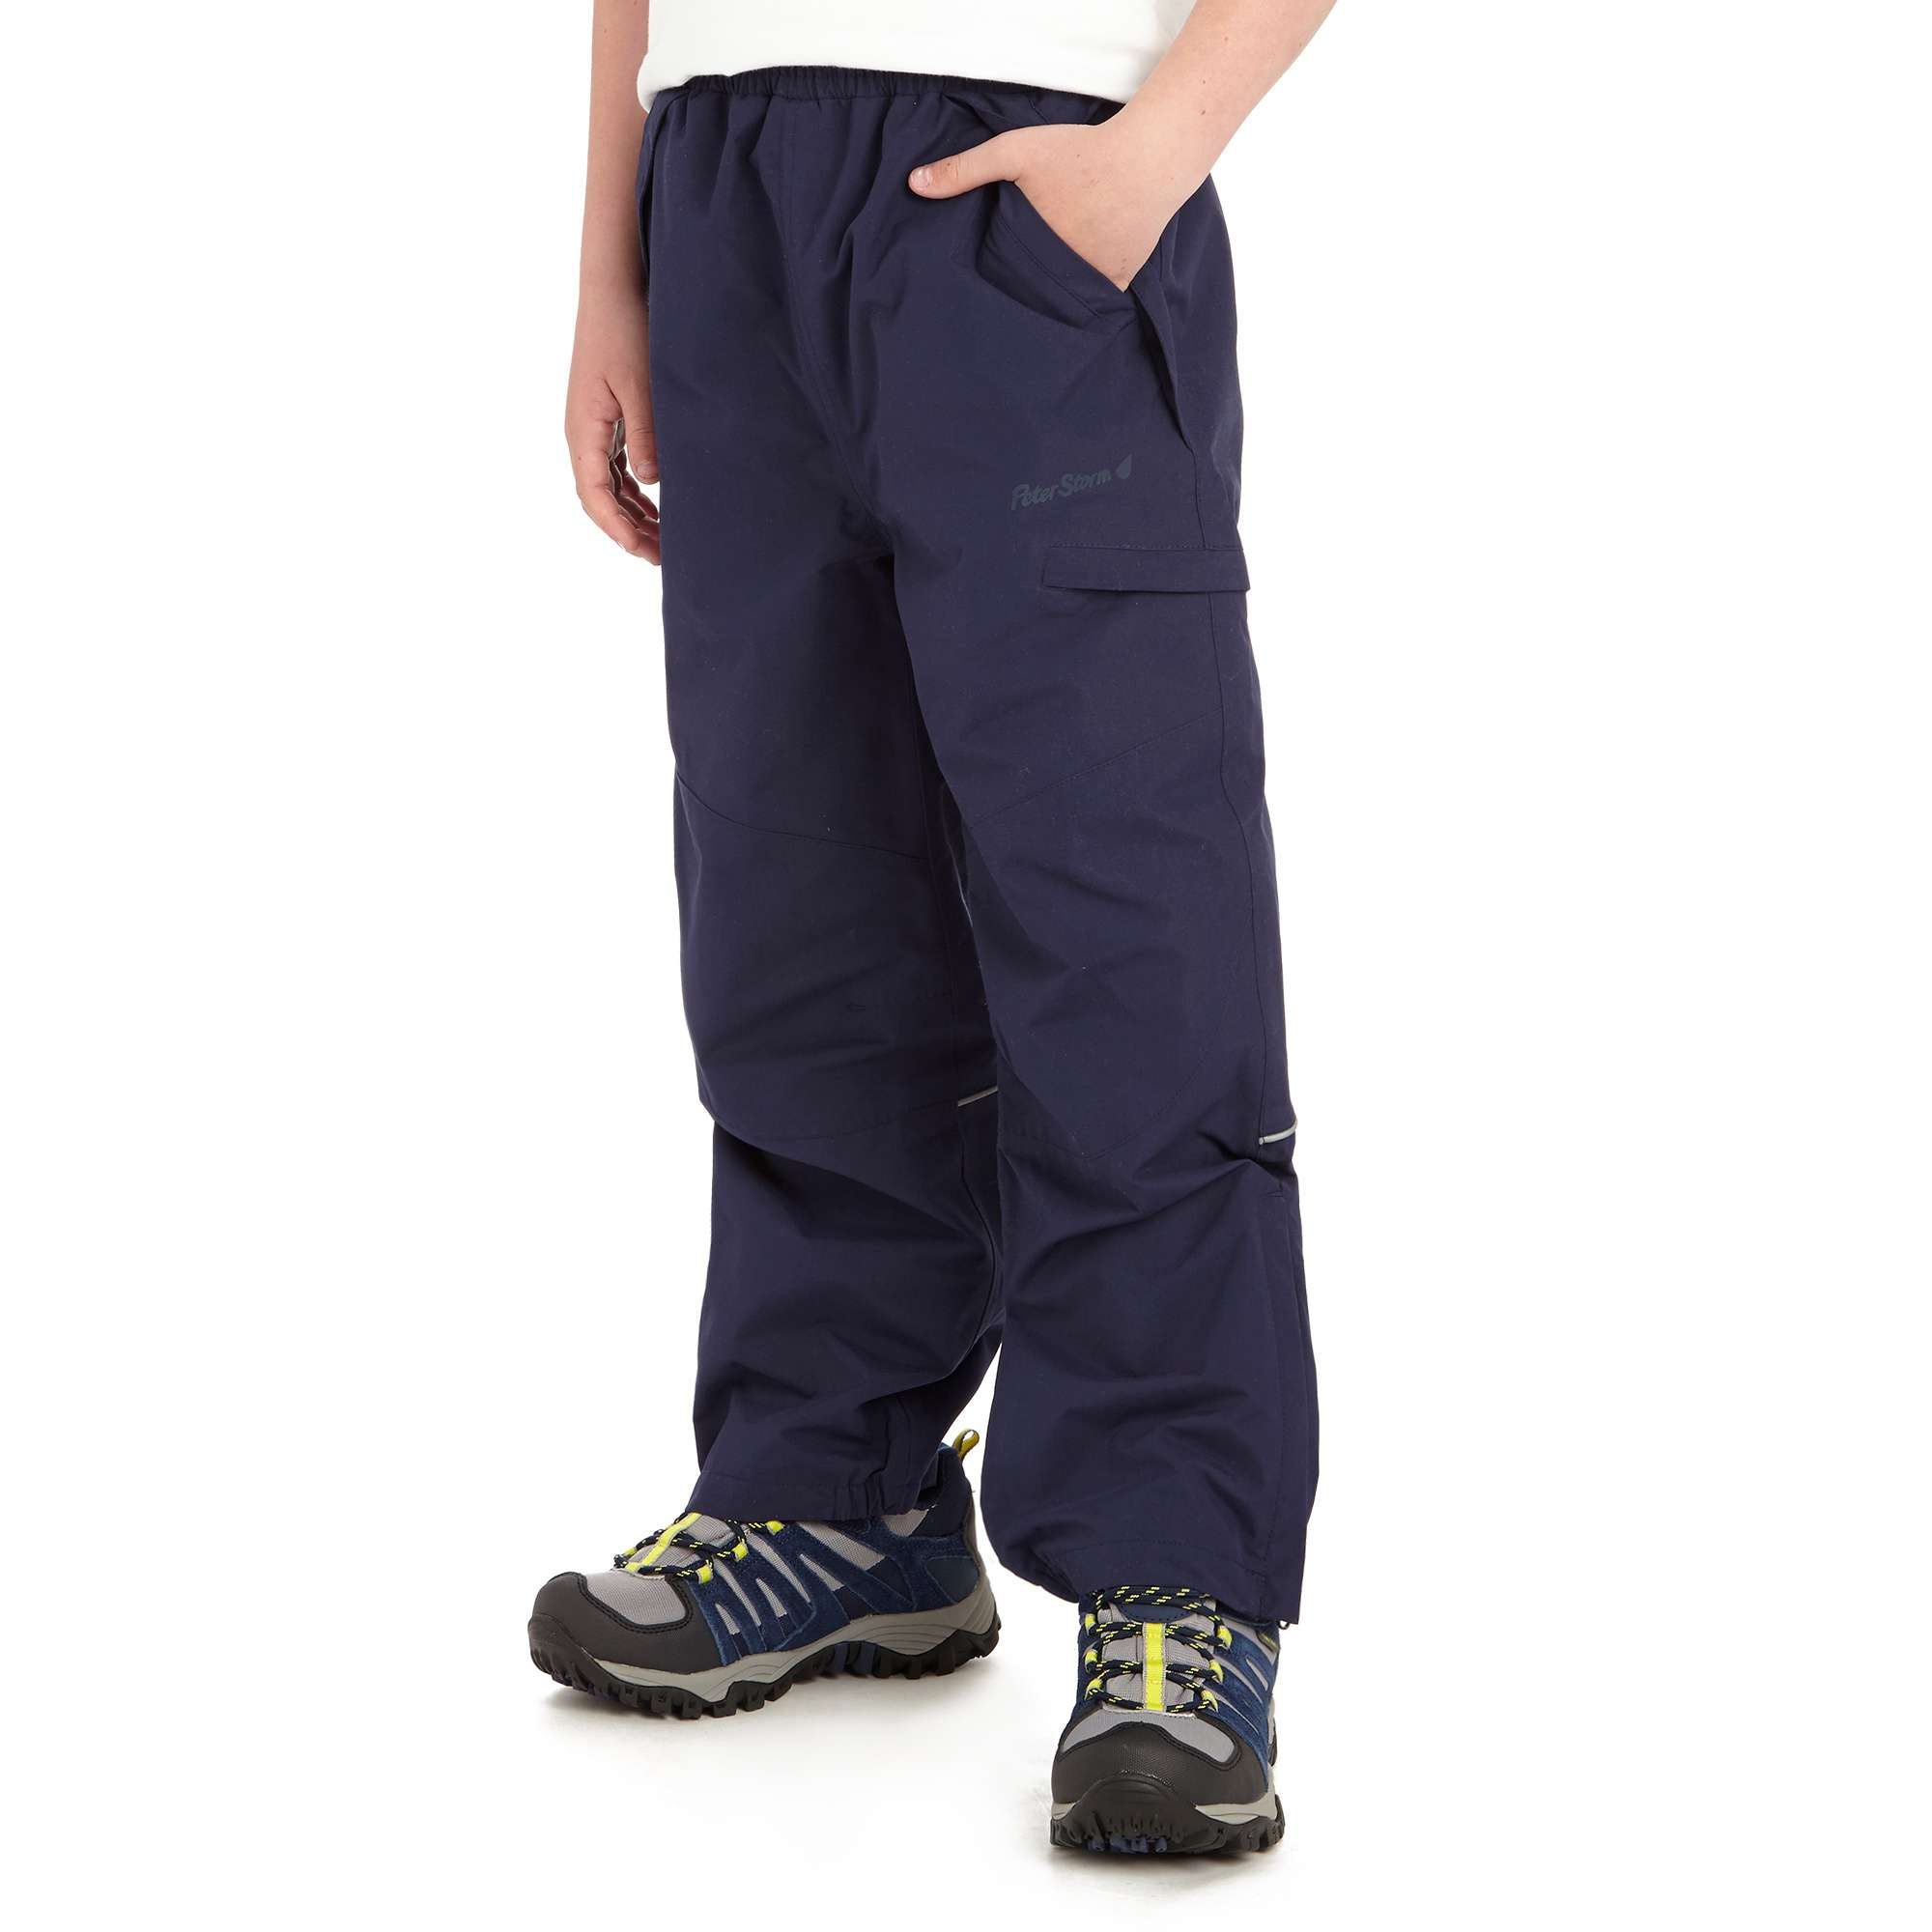 PETER STORM Kids' Typhoon Waterproof Trousers